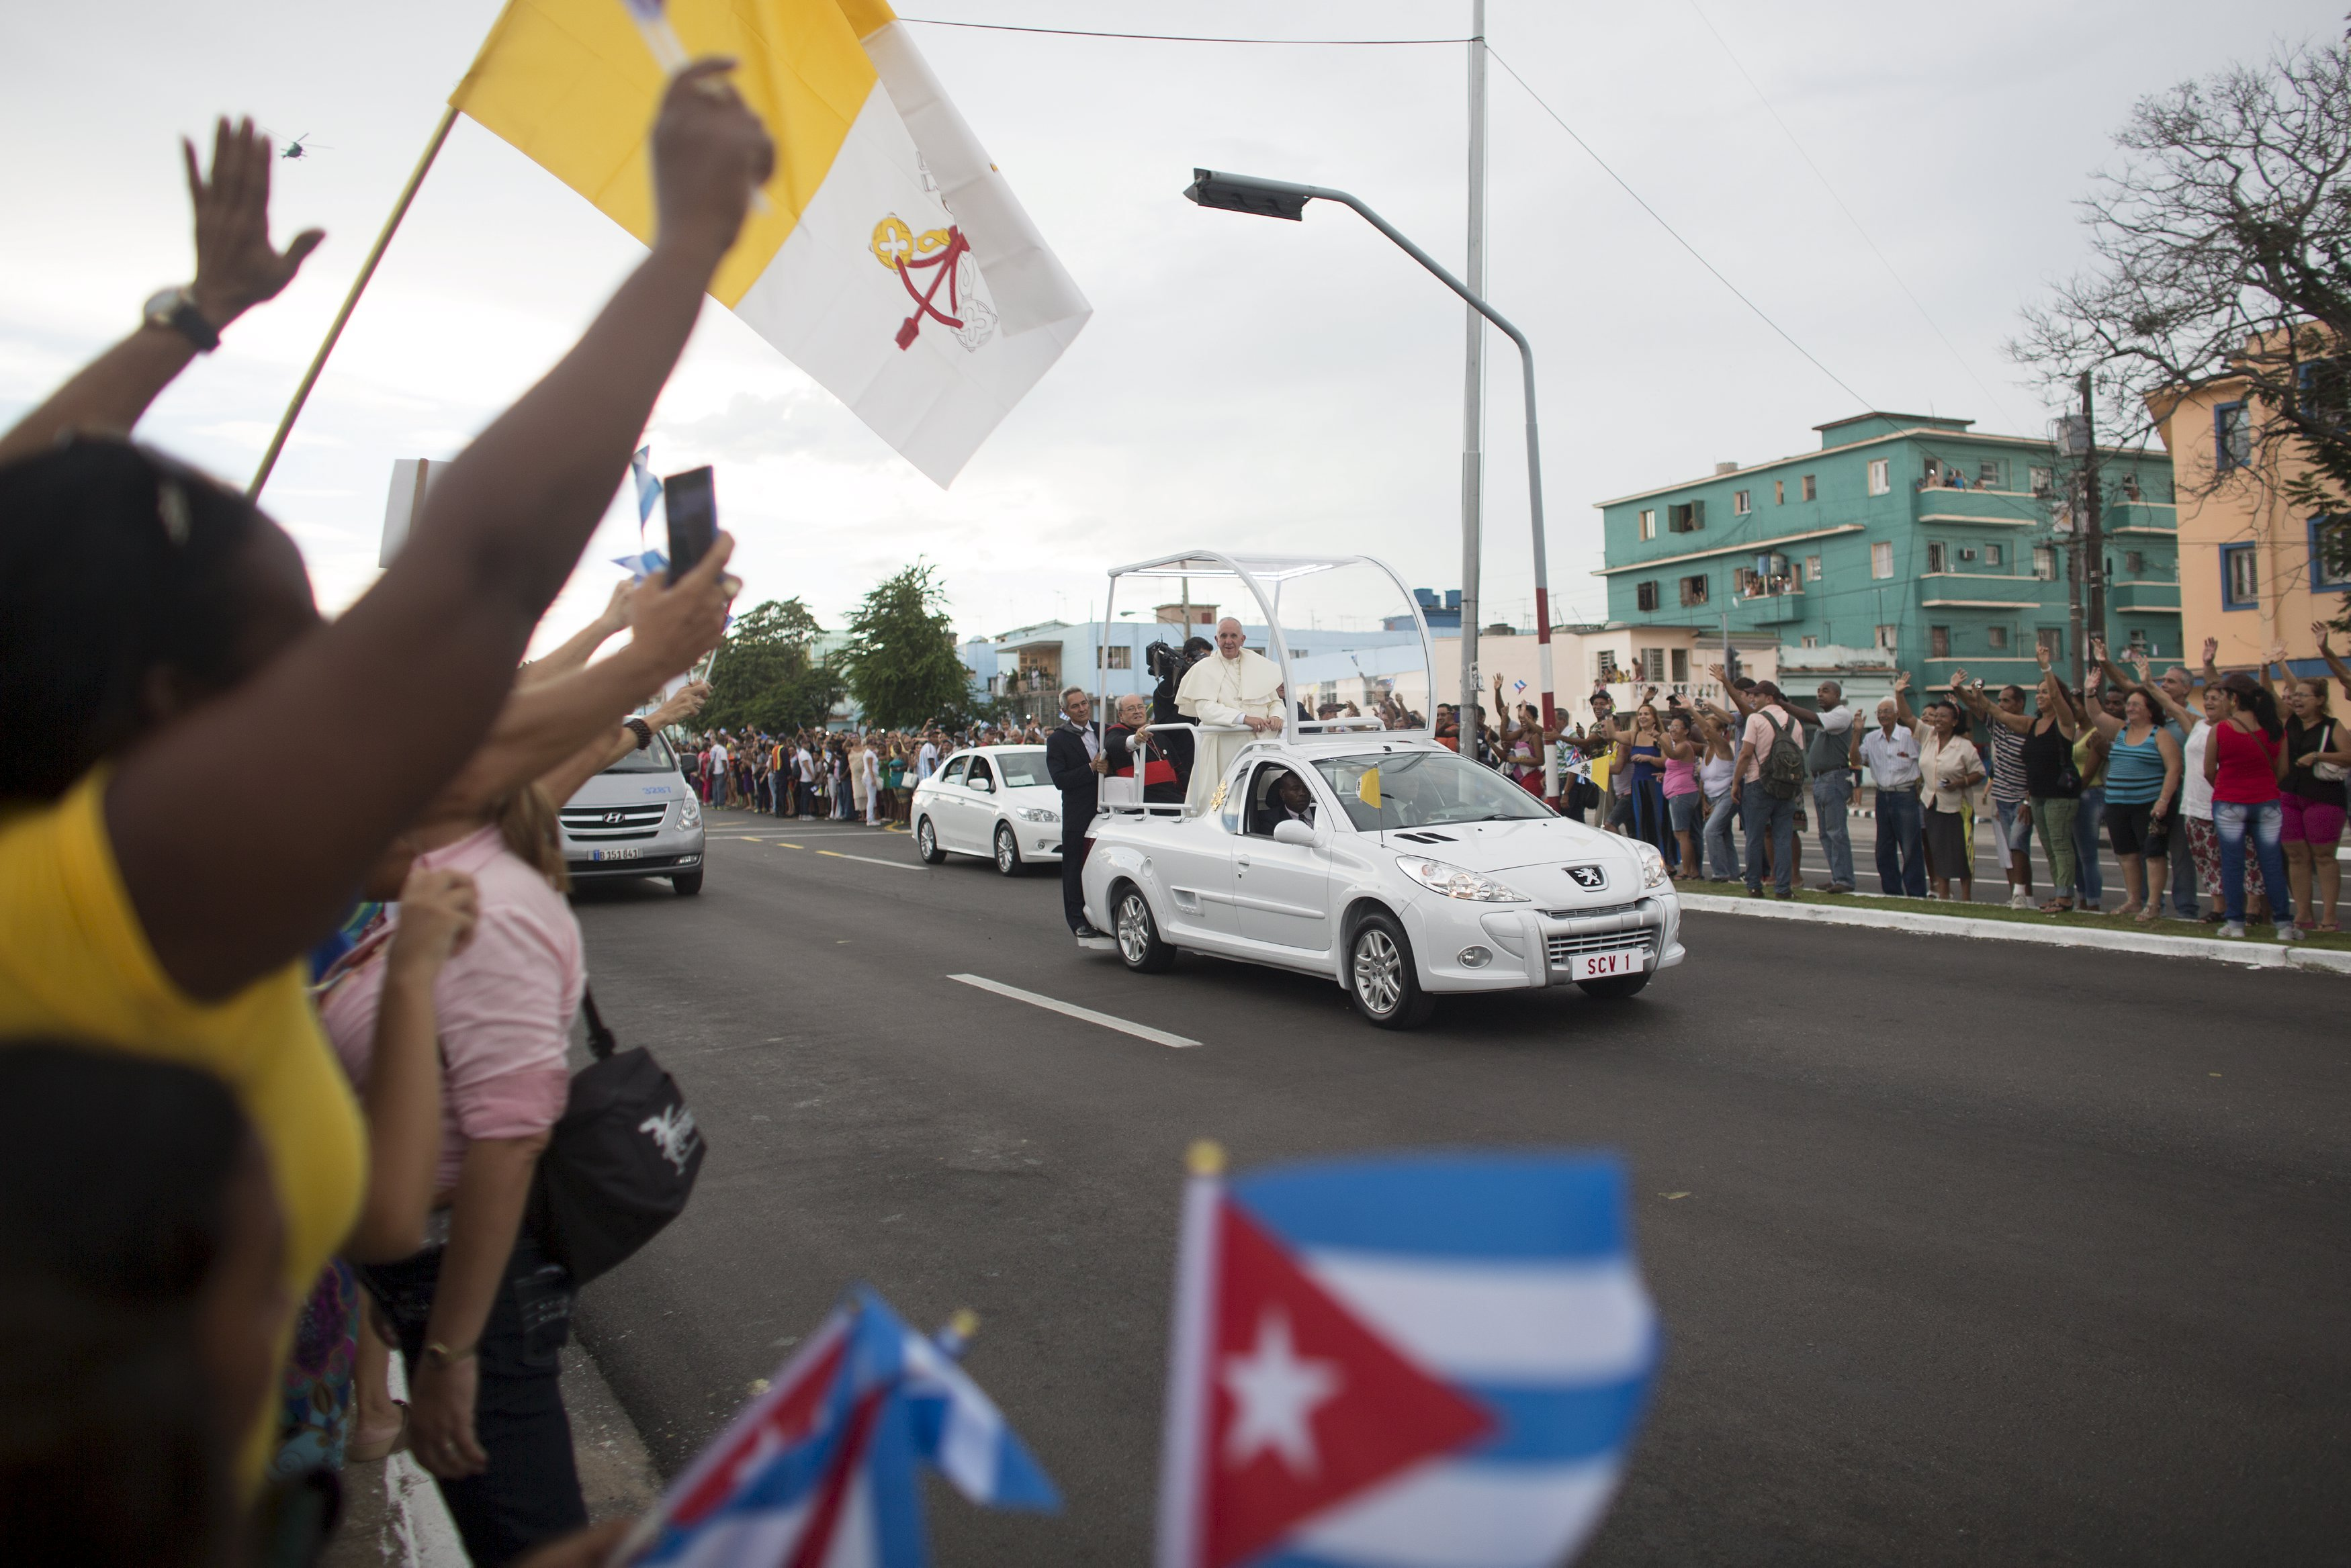 People react as Pope Francis arrives at the airport in Havana, Sept. 19, 2015.